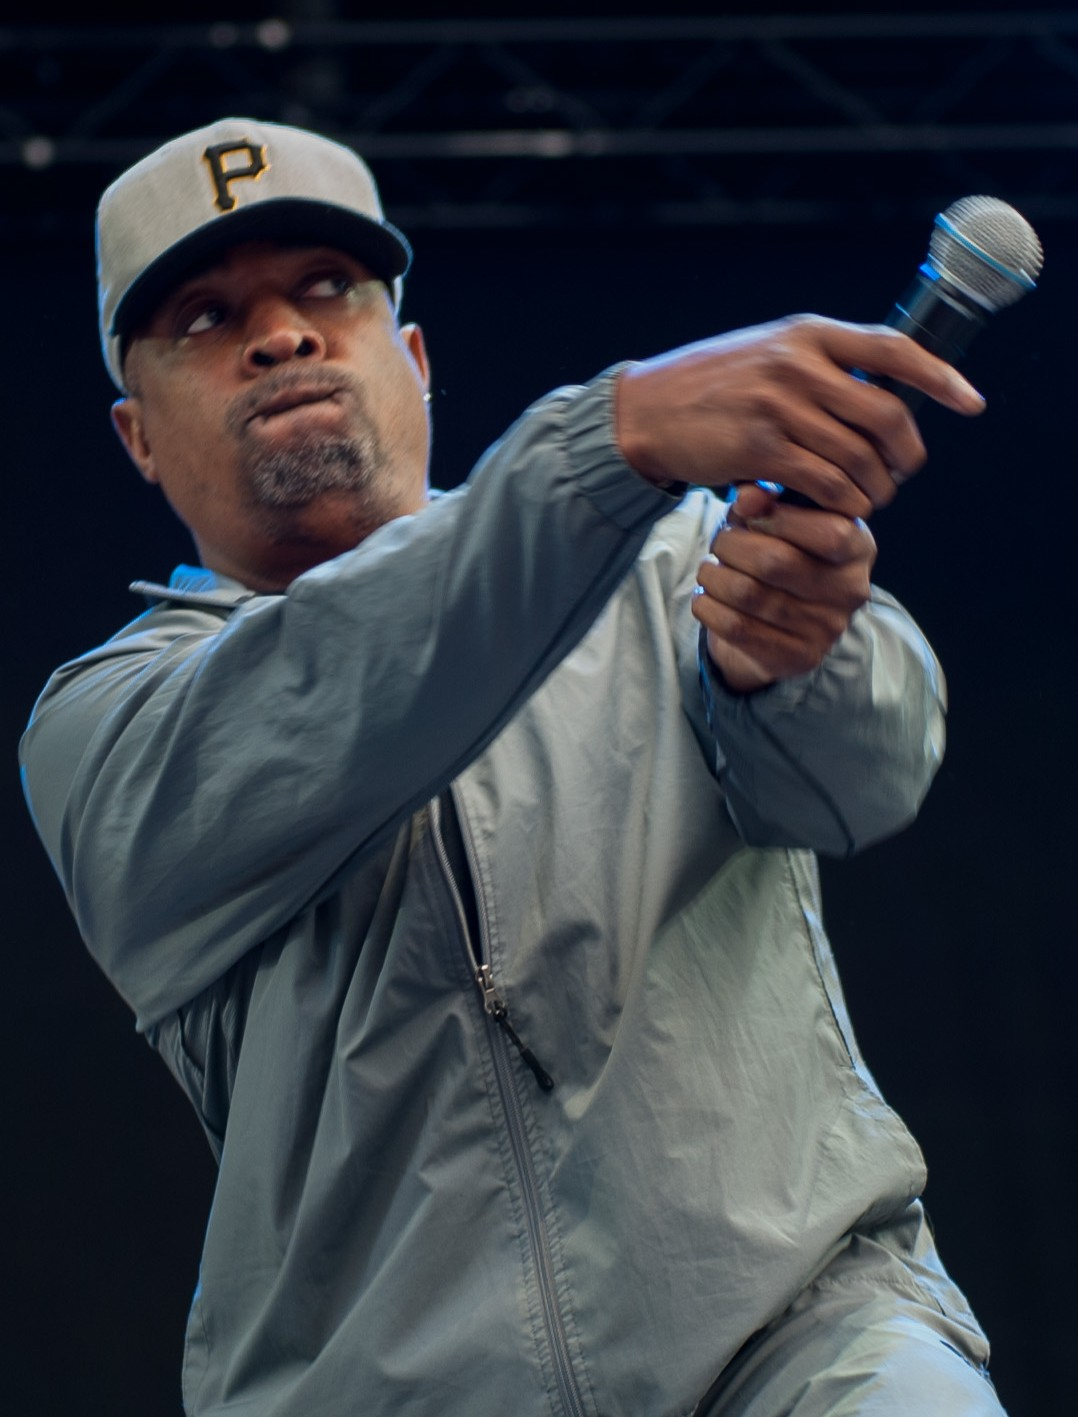 The Quietus   Features   Anniversary      Years On  Public Enemy s     Pinterest The Quietus   Features   Anniversary      Years On  Public Enemy s  Apocalypse    The Enemy Strikes Black Revisited